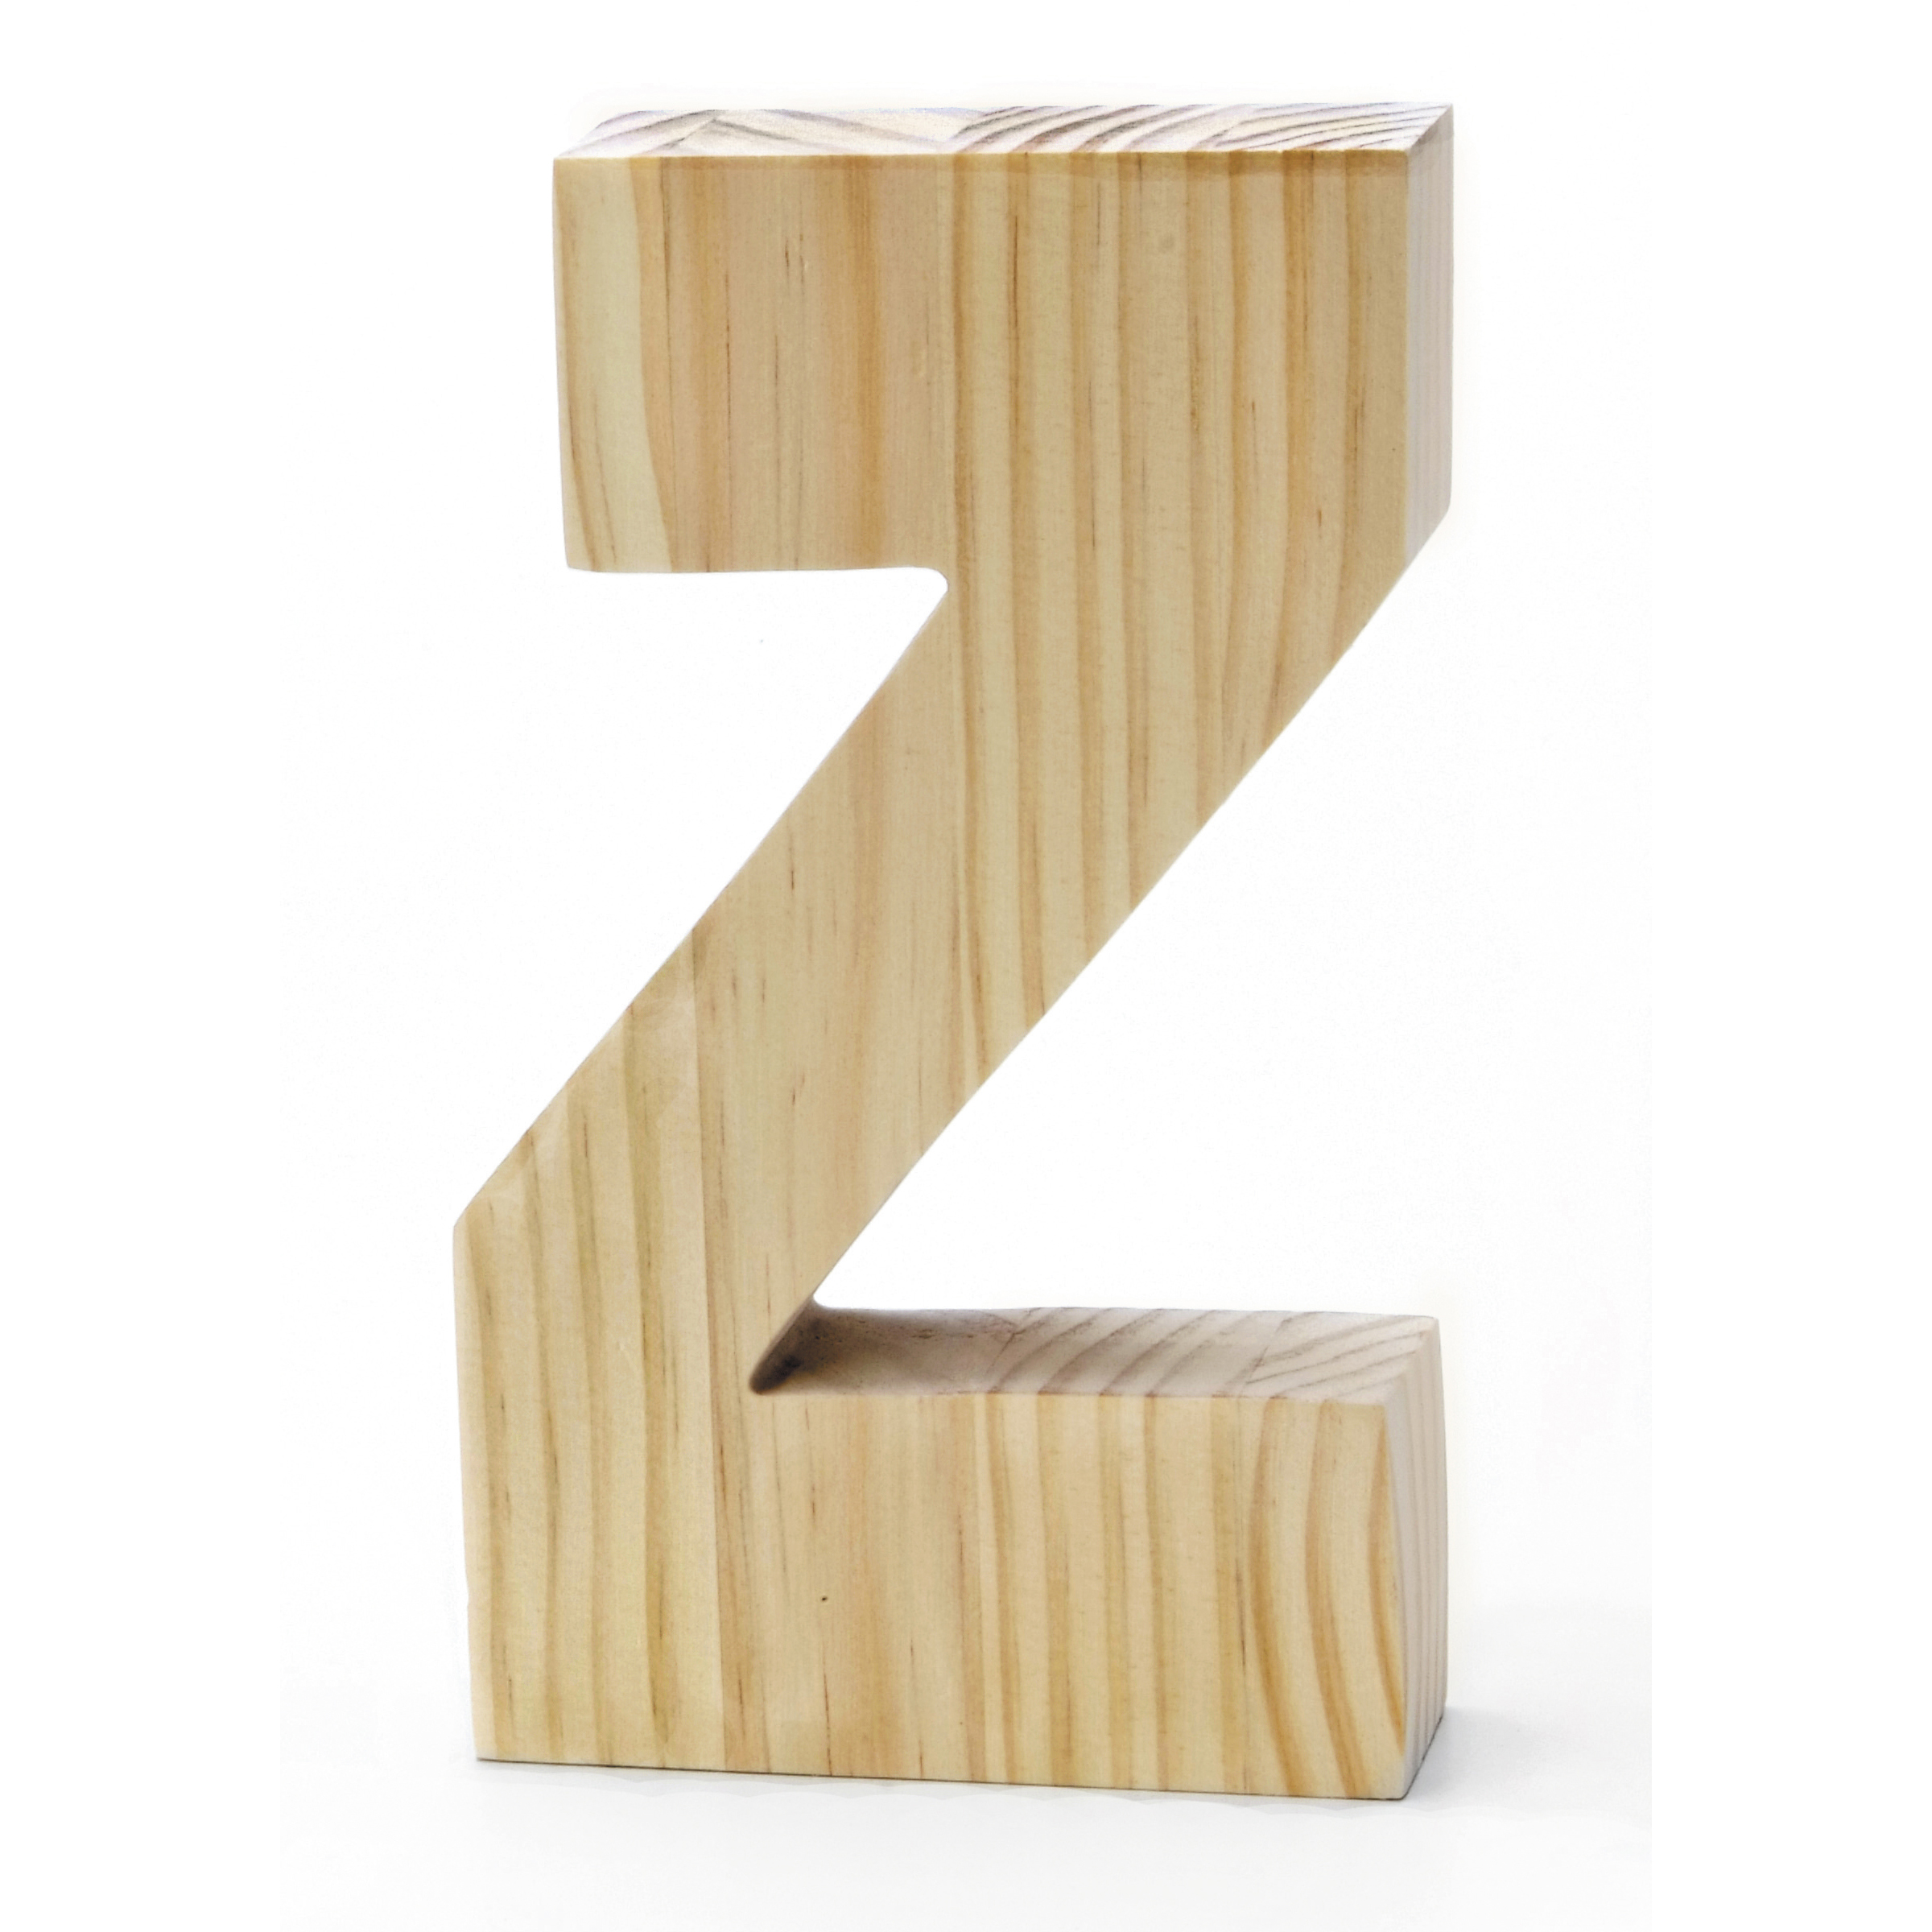 Chunky Wood Letter 8 X 5 In, Z